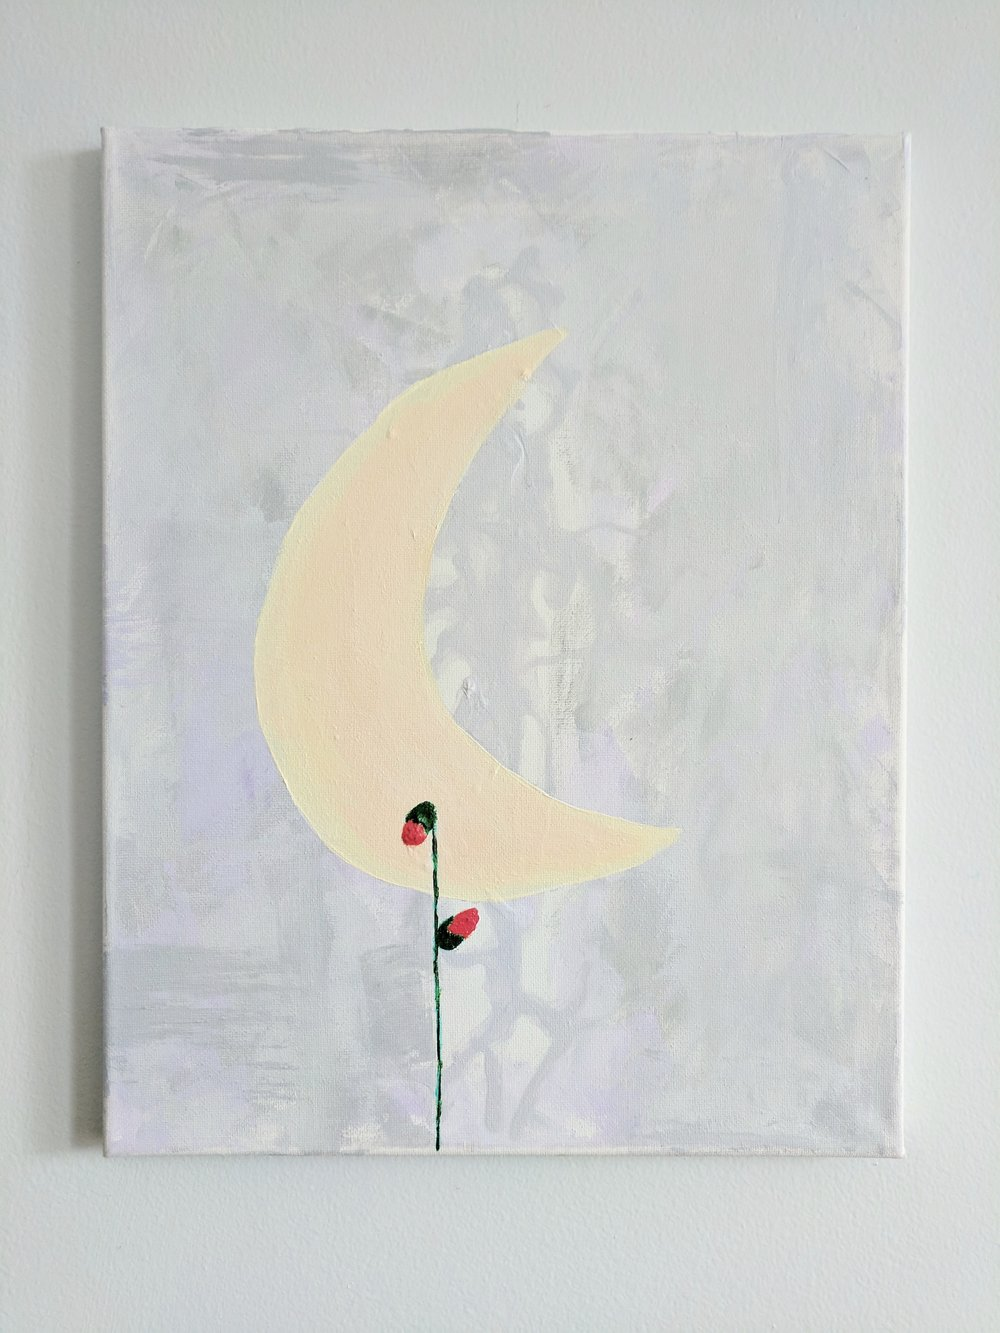 The backdrop to this piece is a silhouette of a mannequin that represents the suffocating melancholy of my soul during a depressive episode. The pale yellow and peach moon crescent represents the skinny light reflected off the sun and coming through in the darkness. The two floral buds connected by a stem expresses the cycles of rebirth between light and dark.